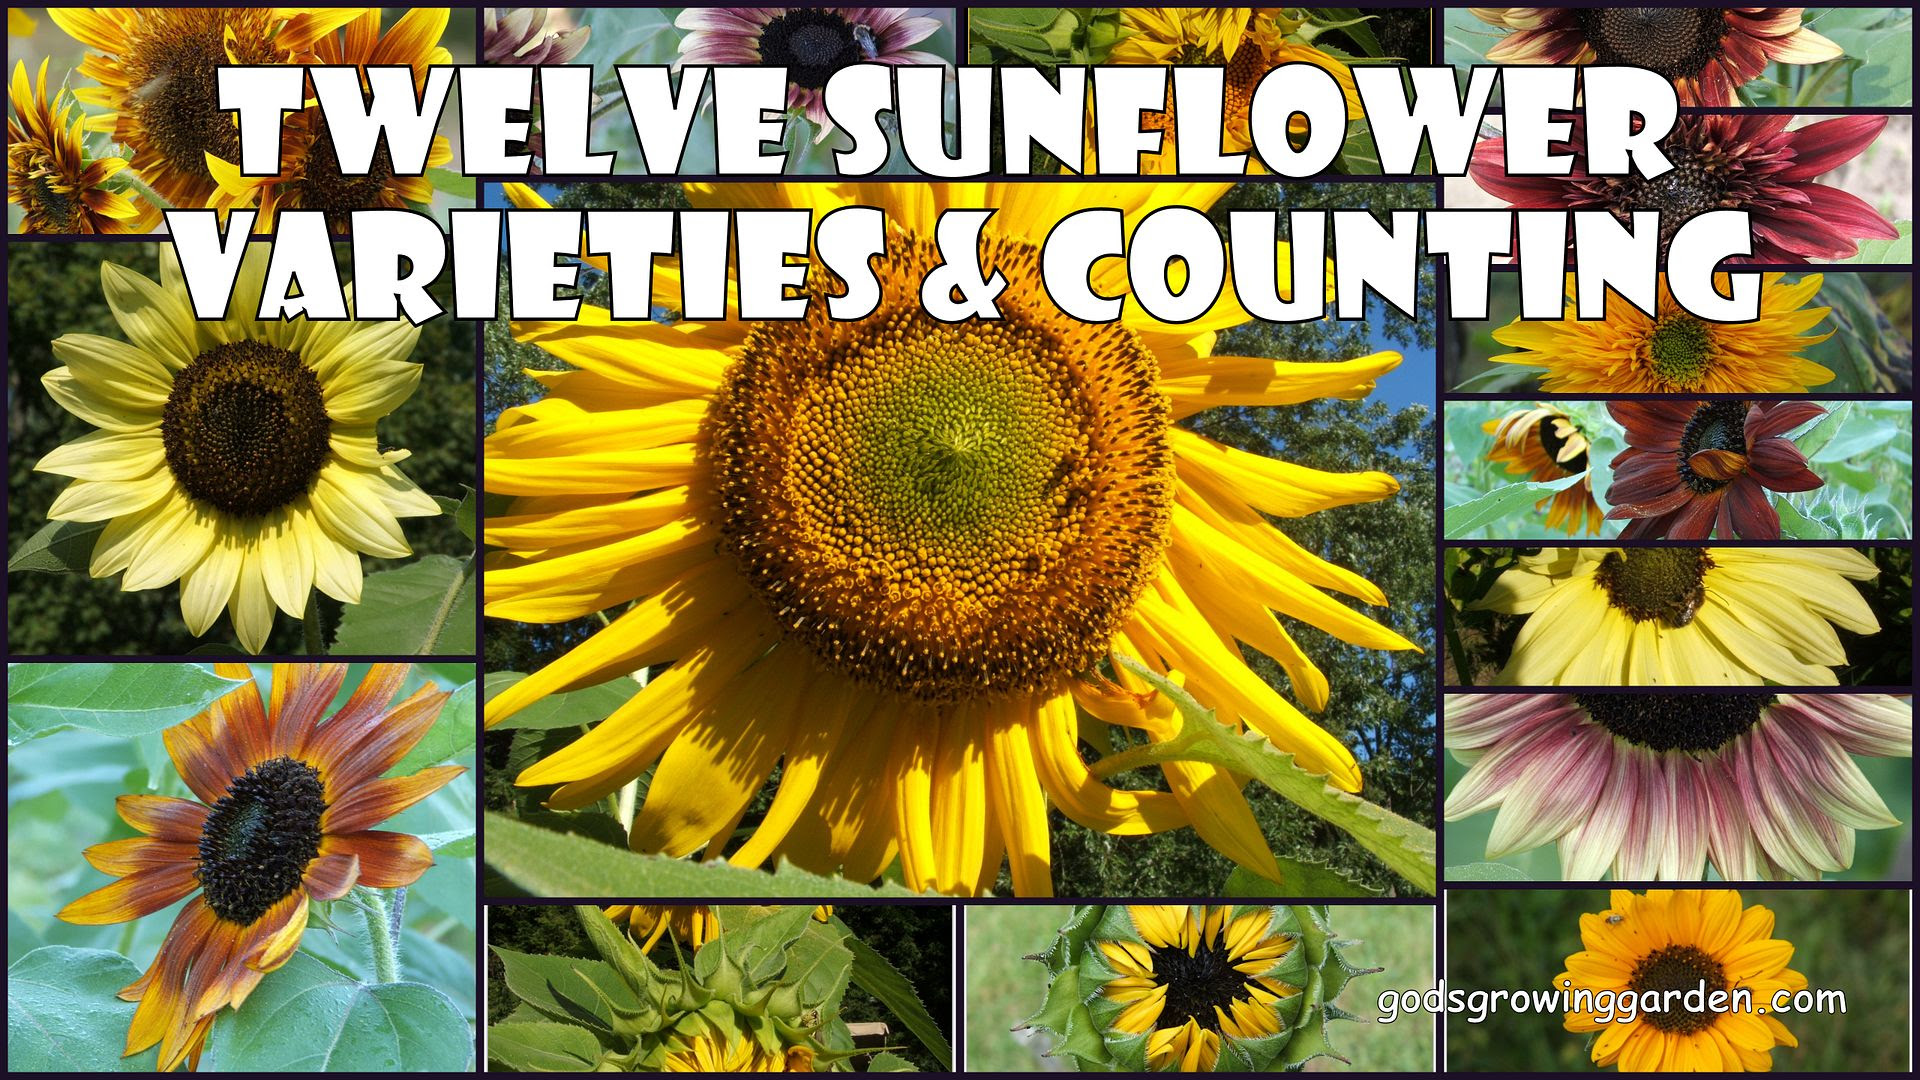 12 Sunflowers by Angie Ouellette-Tower for godsgrowinggarden.com photo 2012-09-06_zps5a51cf4c.jpg